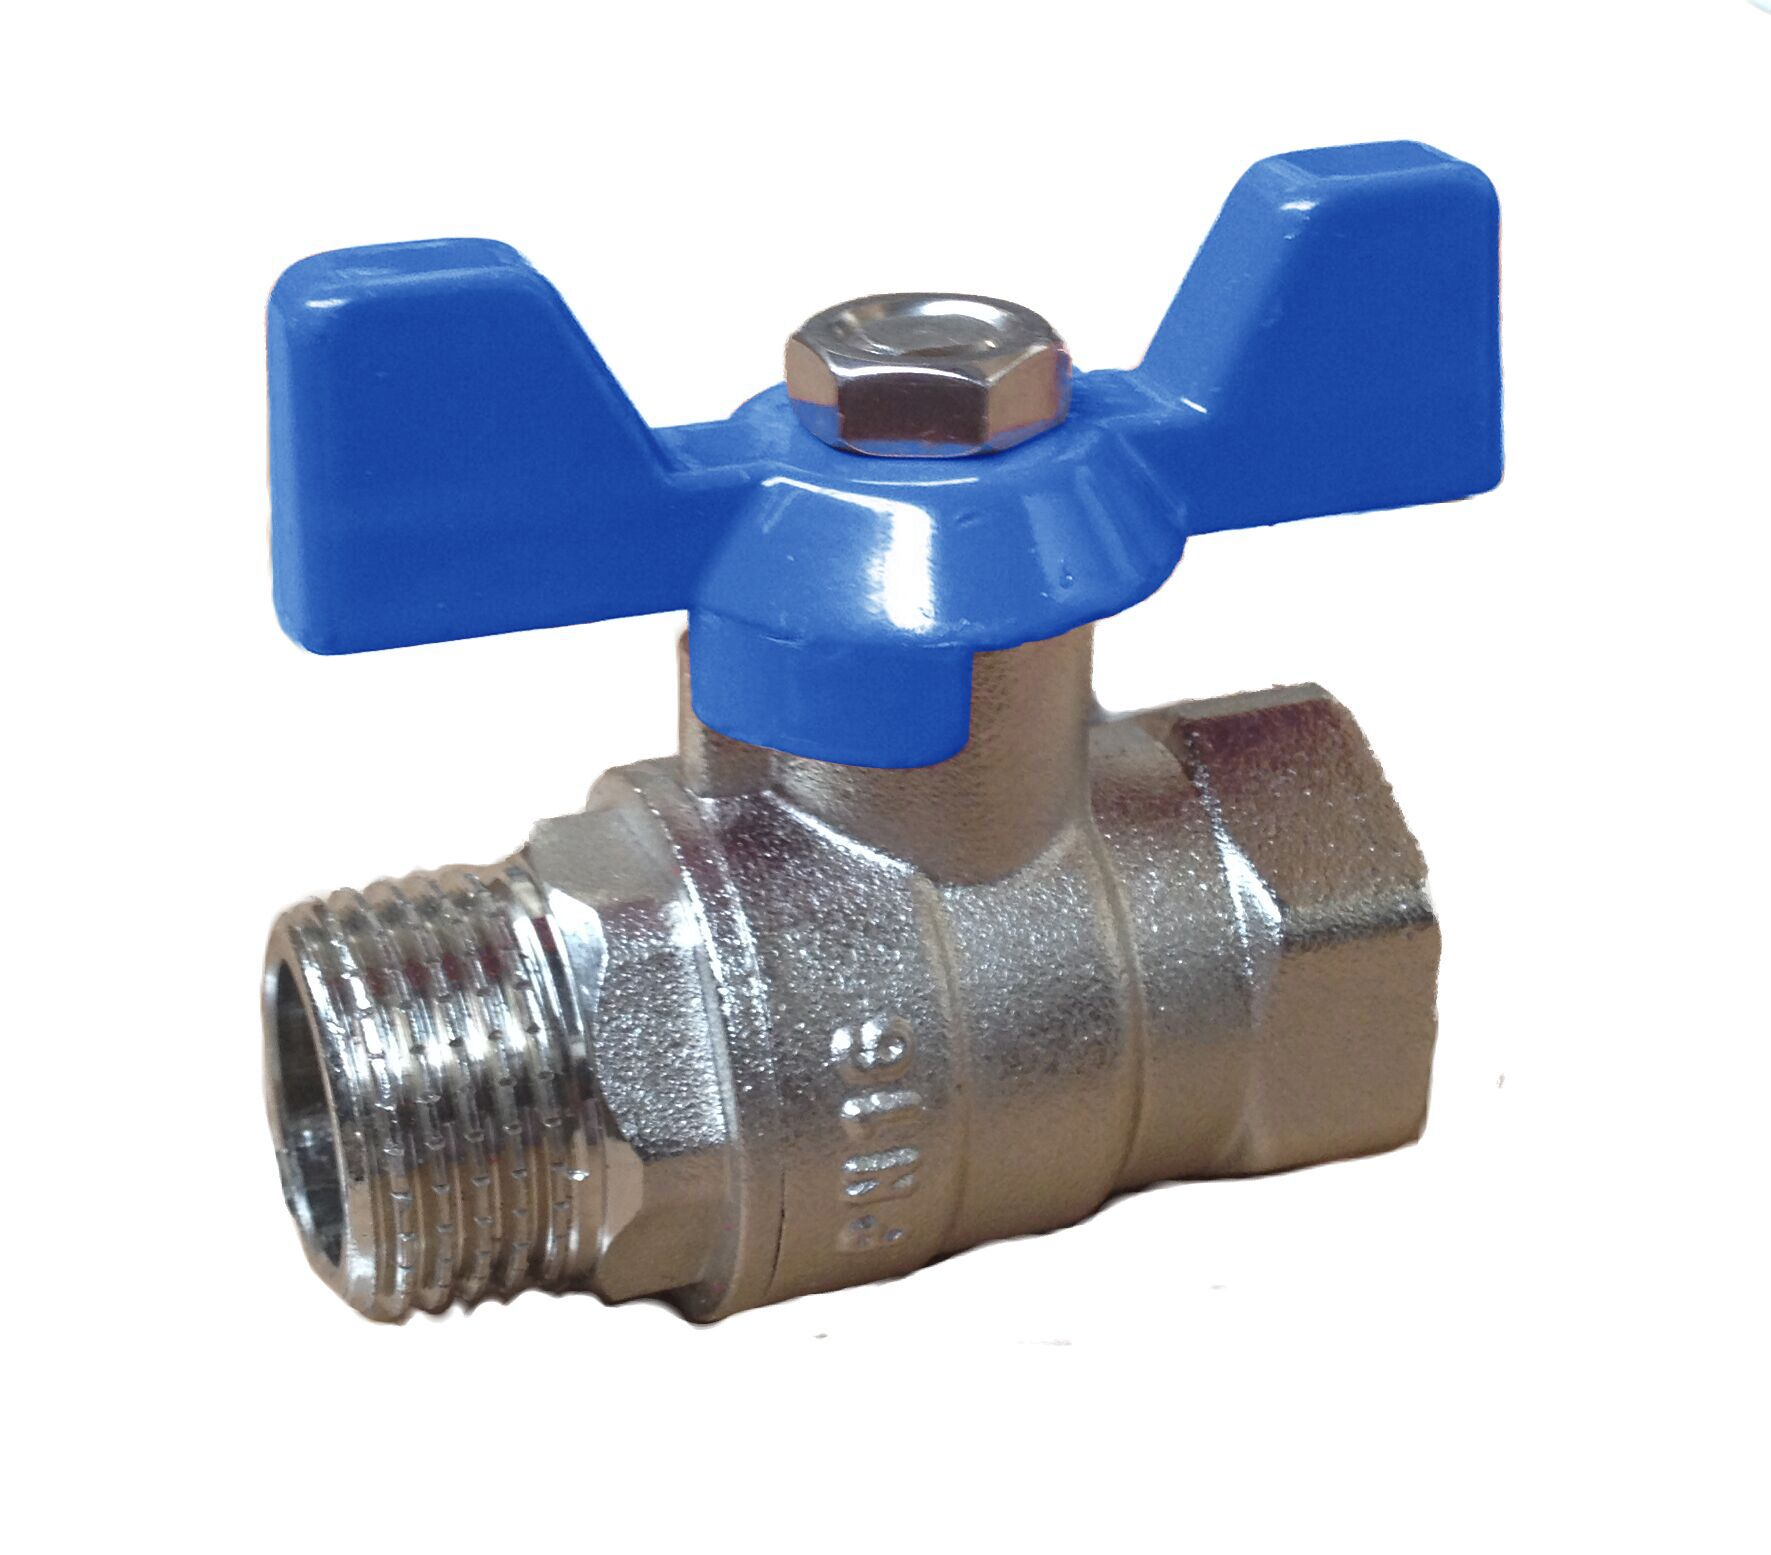 Ball Valve w/ Butterfly 1/2 MxF Blue